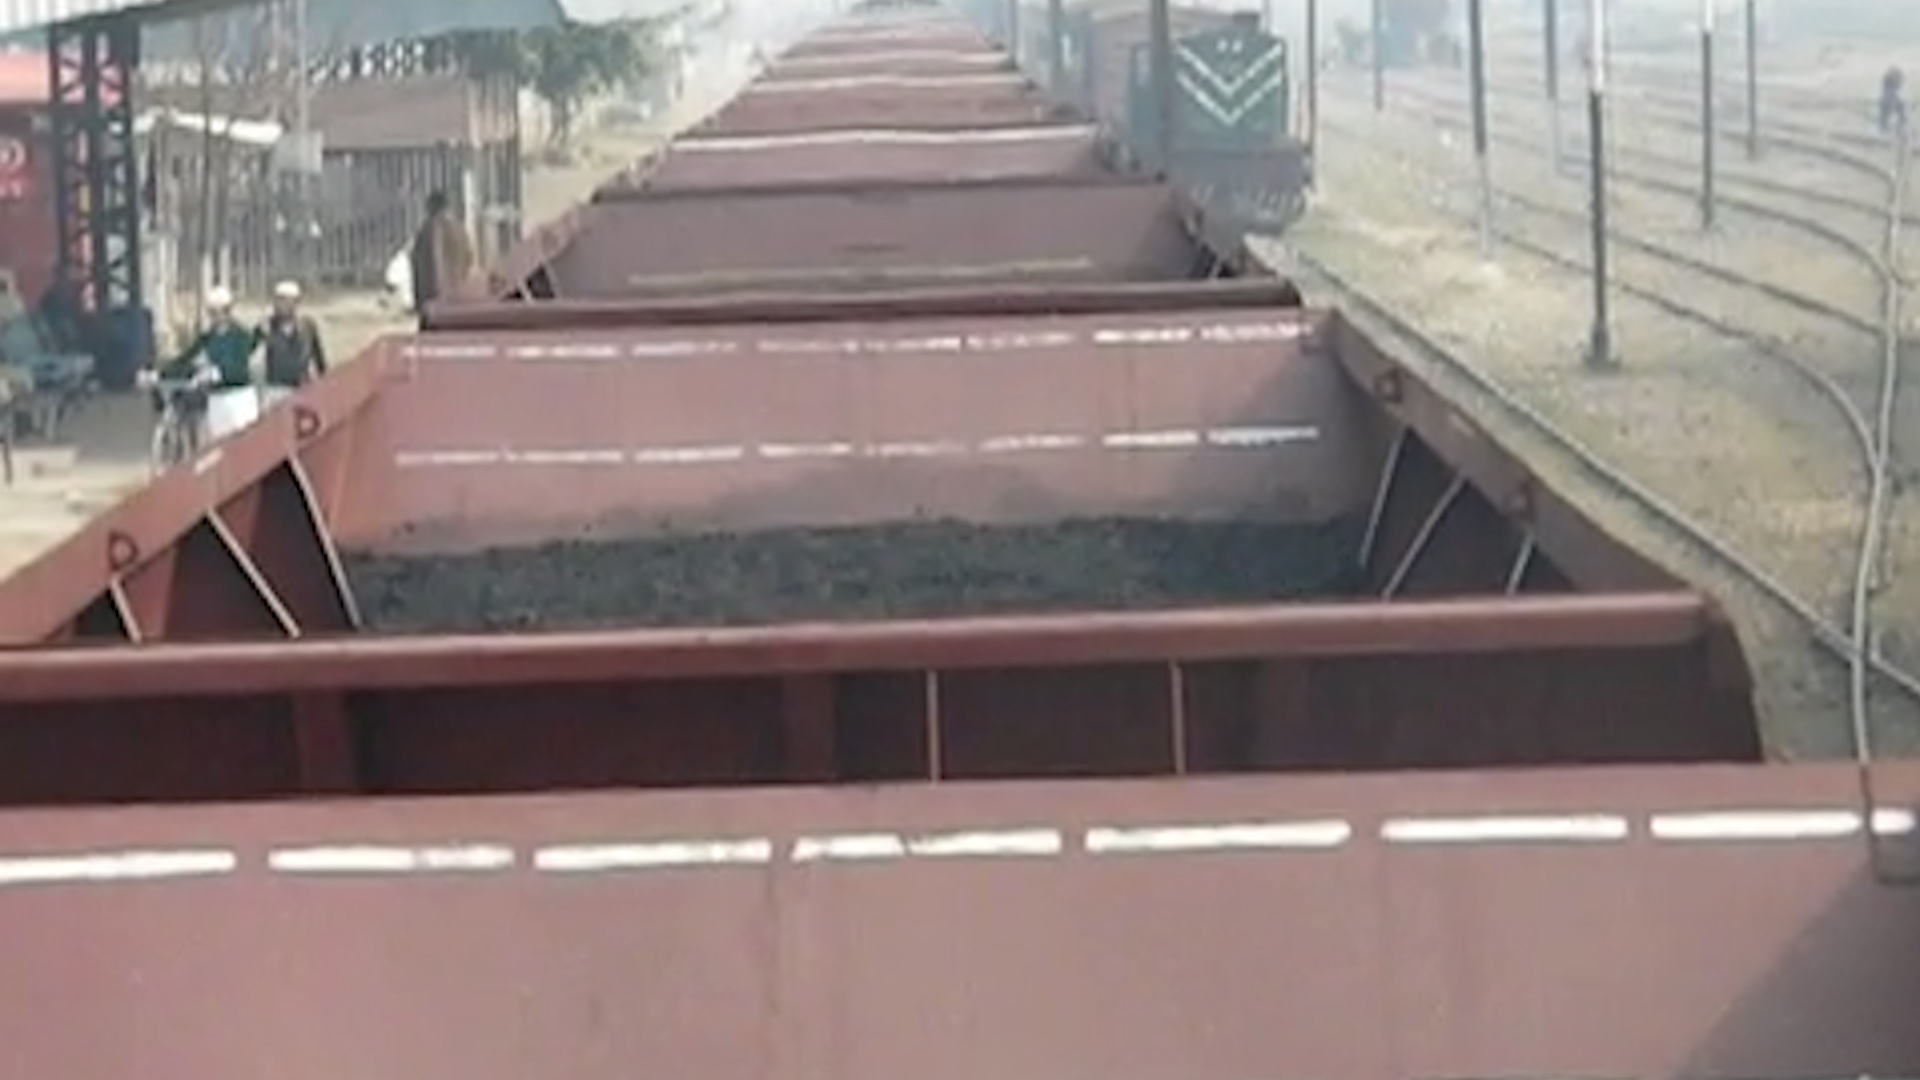 One bogie of train carrying coal found empty